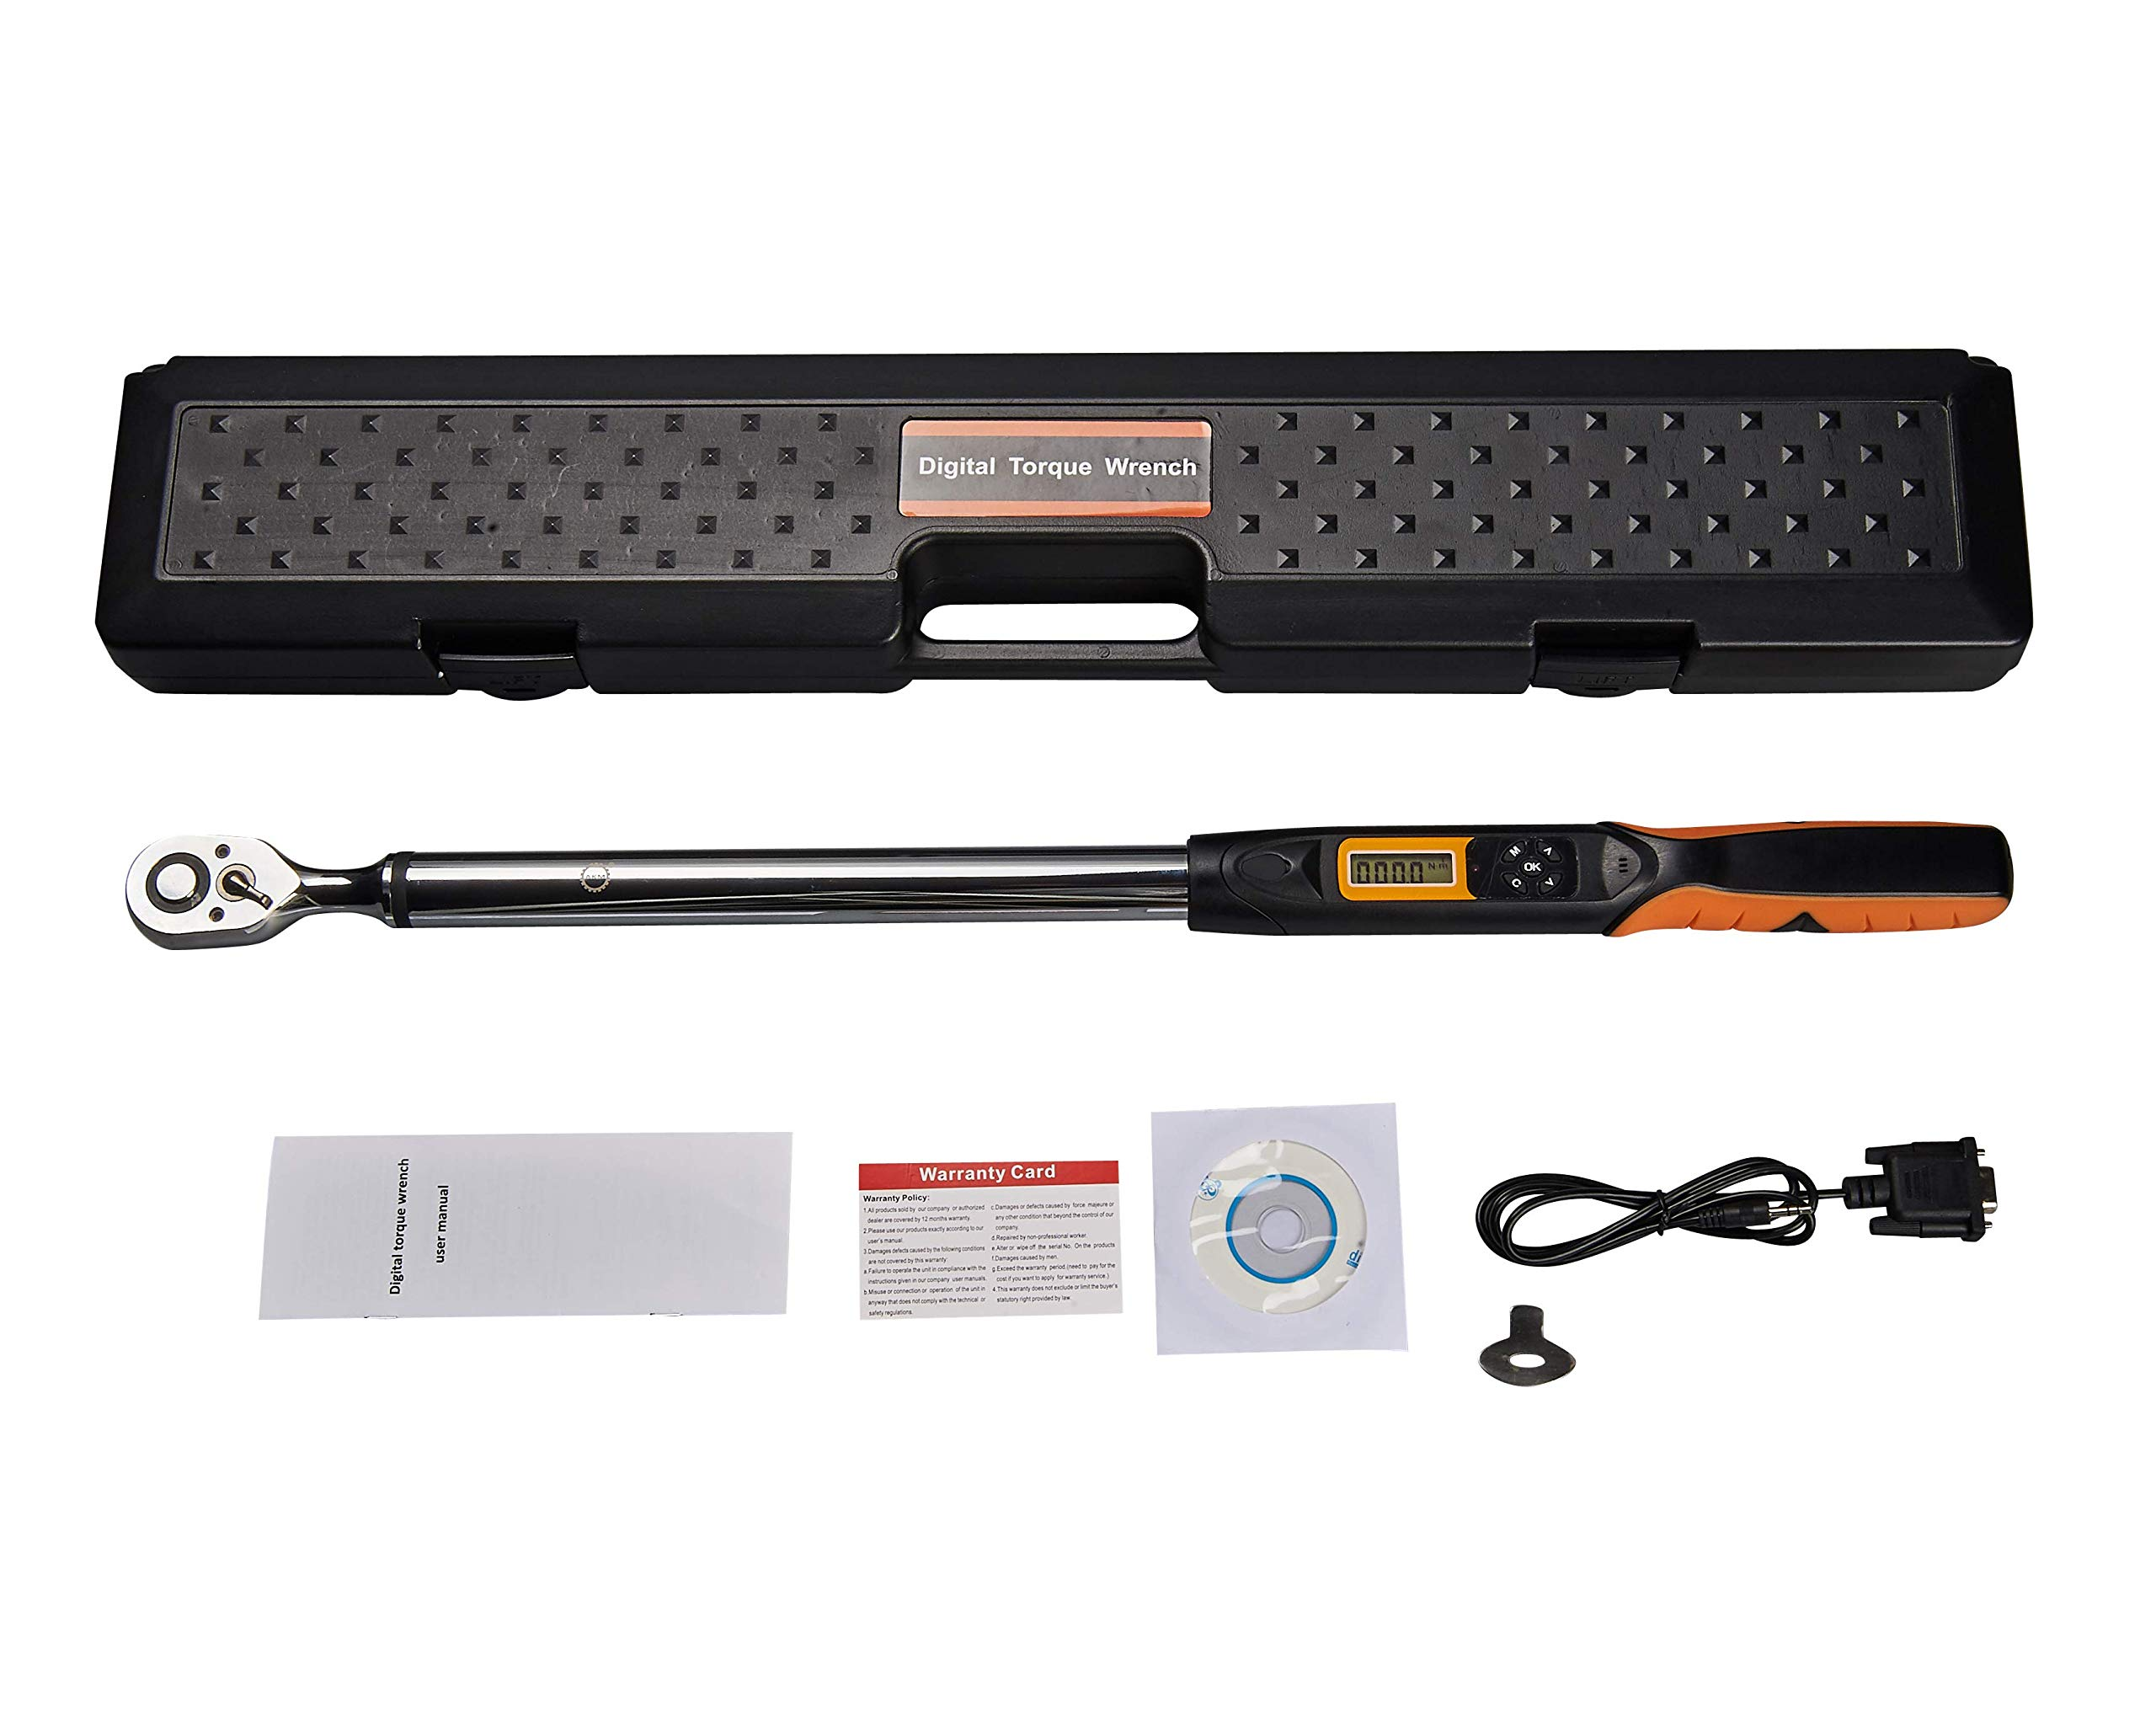 Digital Torque Wrench,AKM 1/2 Inch Drive 72-tooth 12.5-250Ft.Lbs/17-340N.m Accurate To 2% Clockwise & 2.5% Counterclockwise (2019 New Gen) by AKM (Image #2)